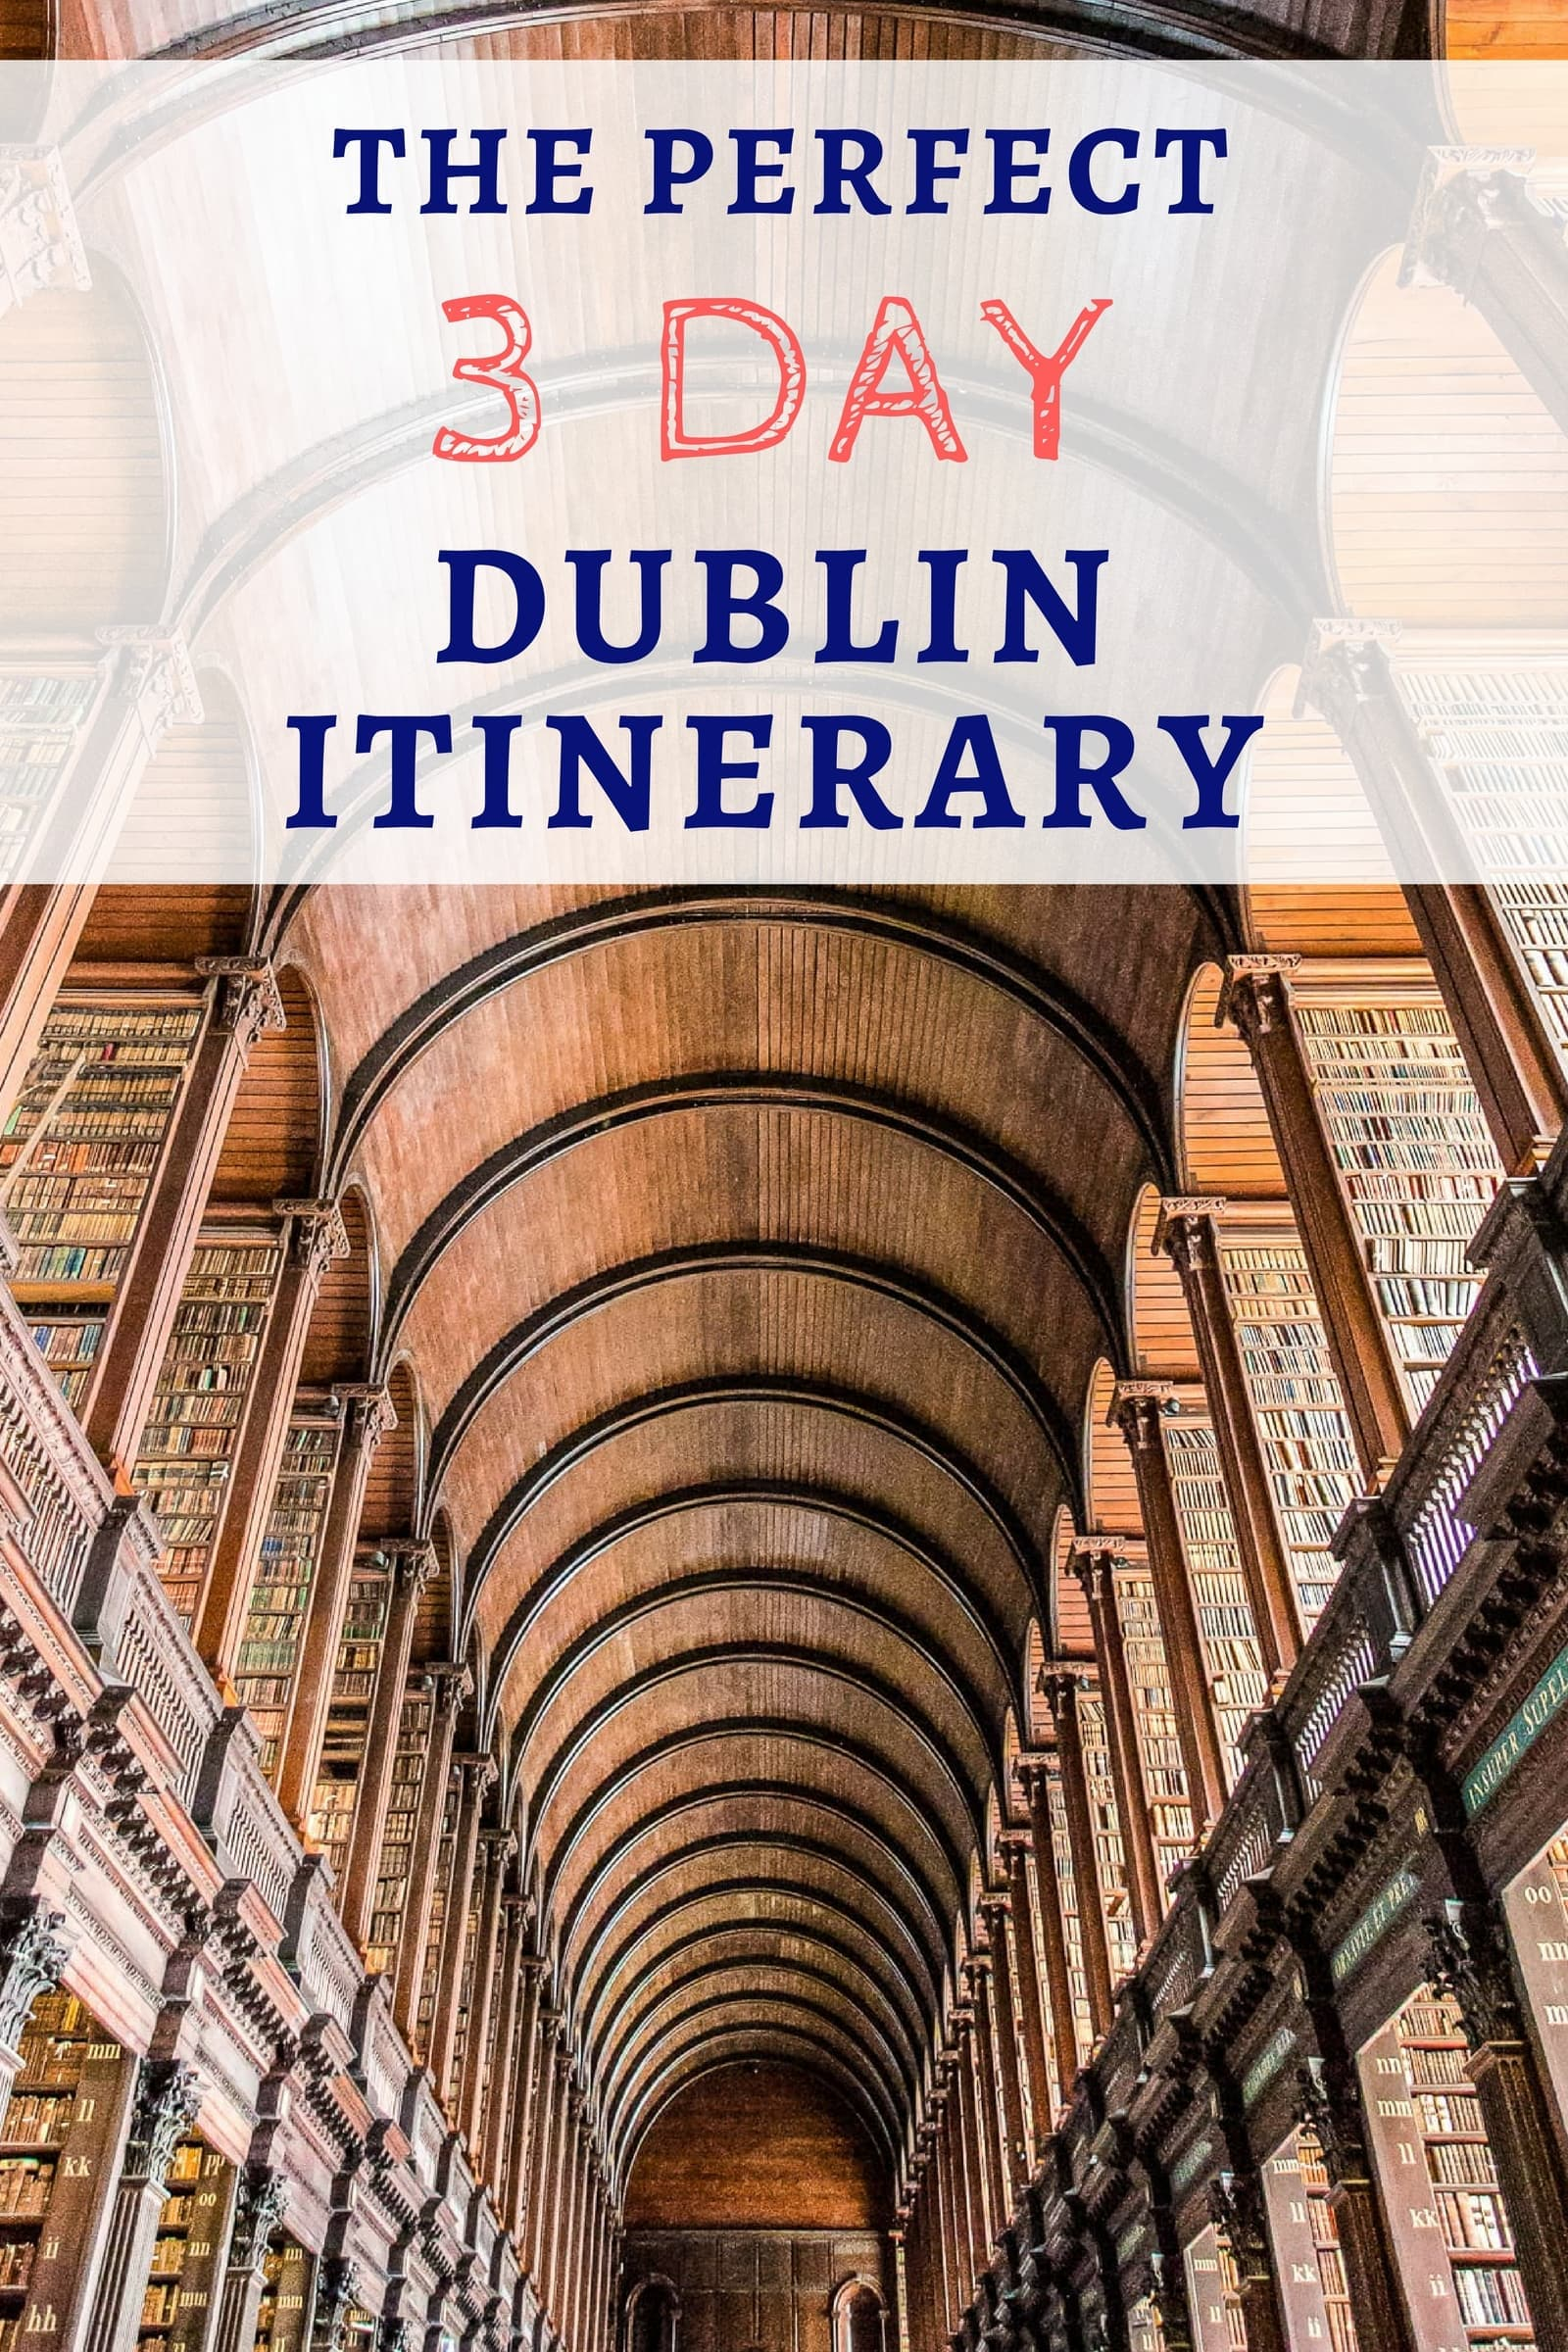 Our Dublin itinerary gives you day-by-day suggestions on how to spend 3 days in Dublin Ireland. Our Dublin itinerary includes all the main highlights of the city such as Trinity College and the Guinness Storehouse as well as a few lesser known sites. We also provide tips on how to get around Dublin, a map of each day's suggested attractions, tips on where to stay in Dublin, and how to save money during your 3 days in Dublin. #Dublin #DublinItinerary #Ireland #travel